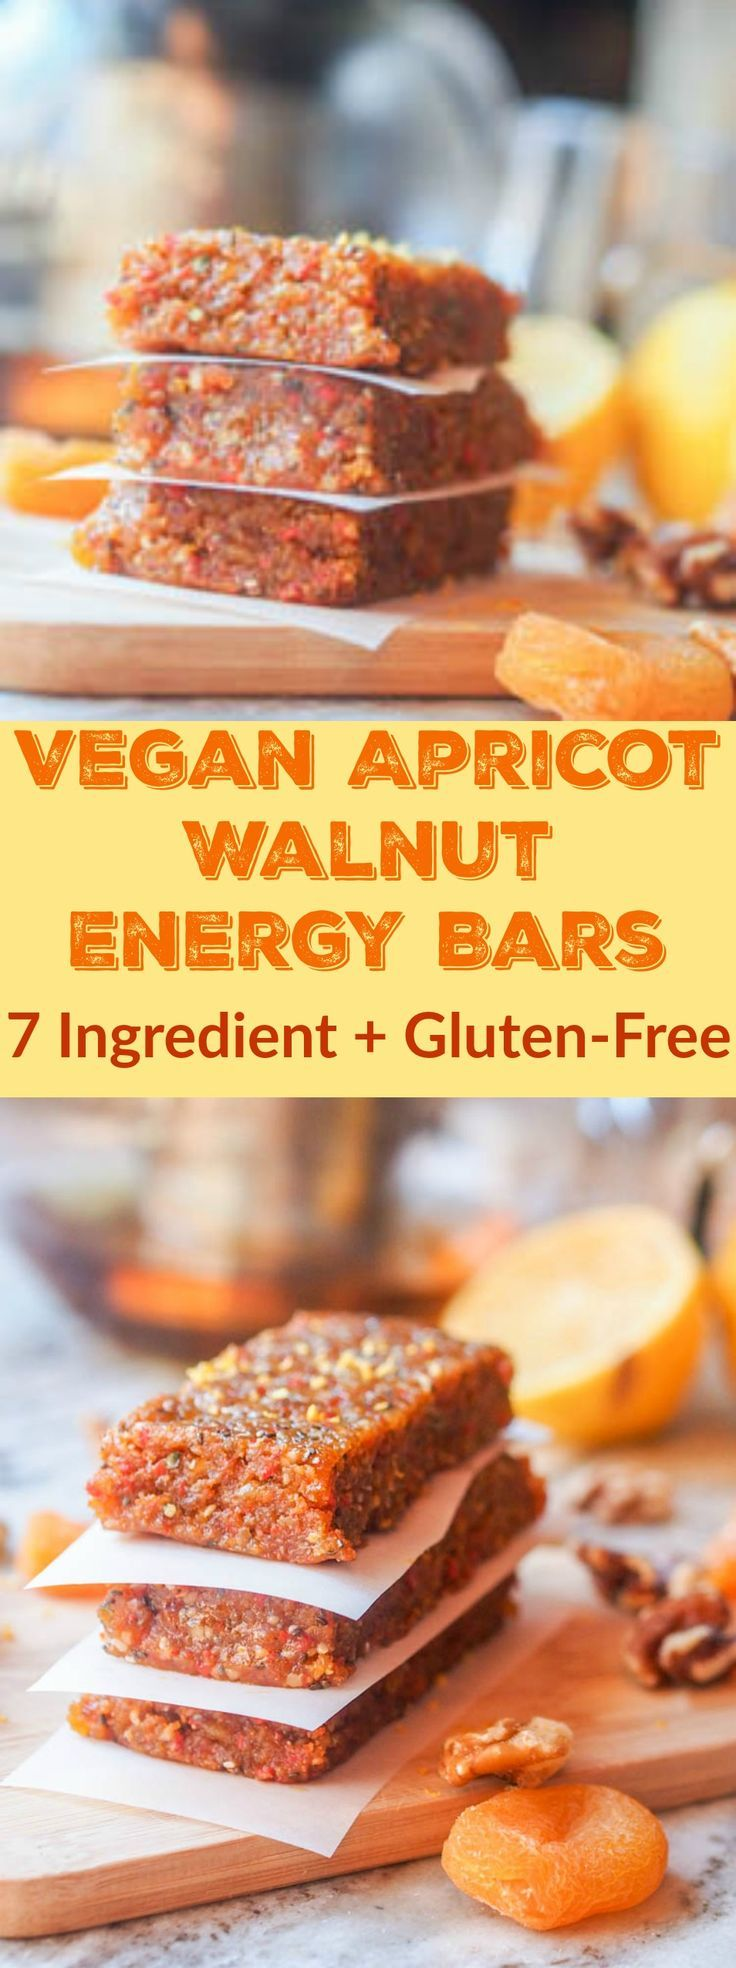 This 7 ingredient vegan apricot walnut energy bars recipe is packed full of healthy vitamins and nutrients. Perfect for taking with you on the go or as a quick breakfast or afternoon snack. Ready in 20 minutes. Gluten Free. | avocadopesto.com